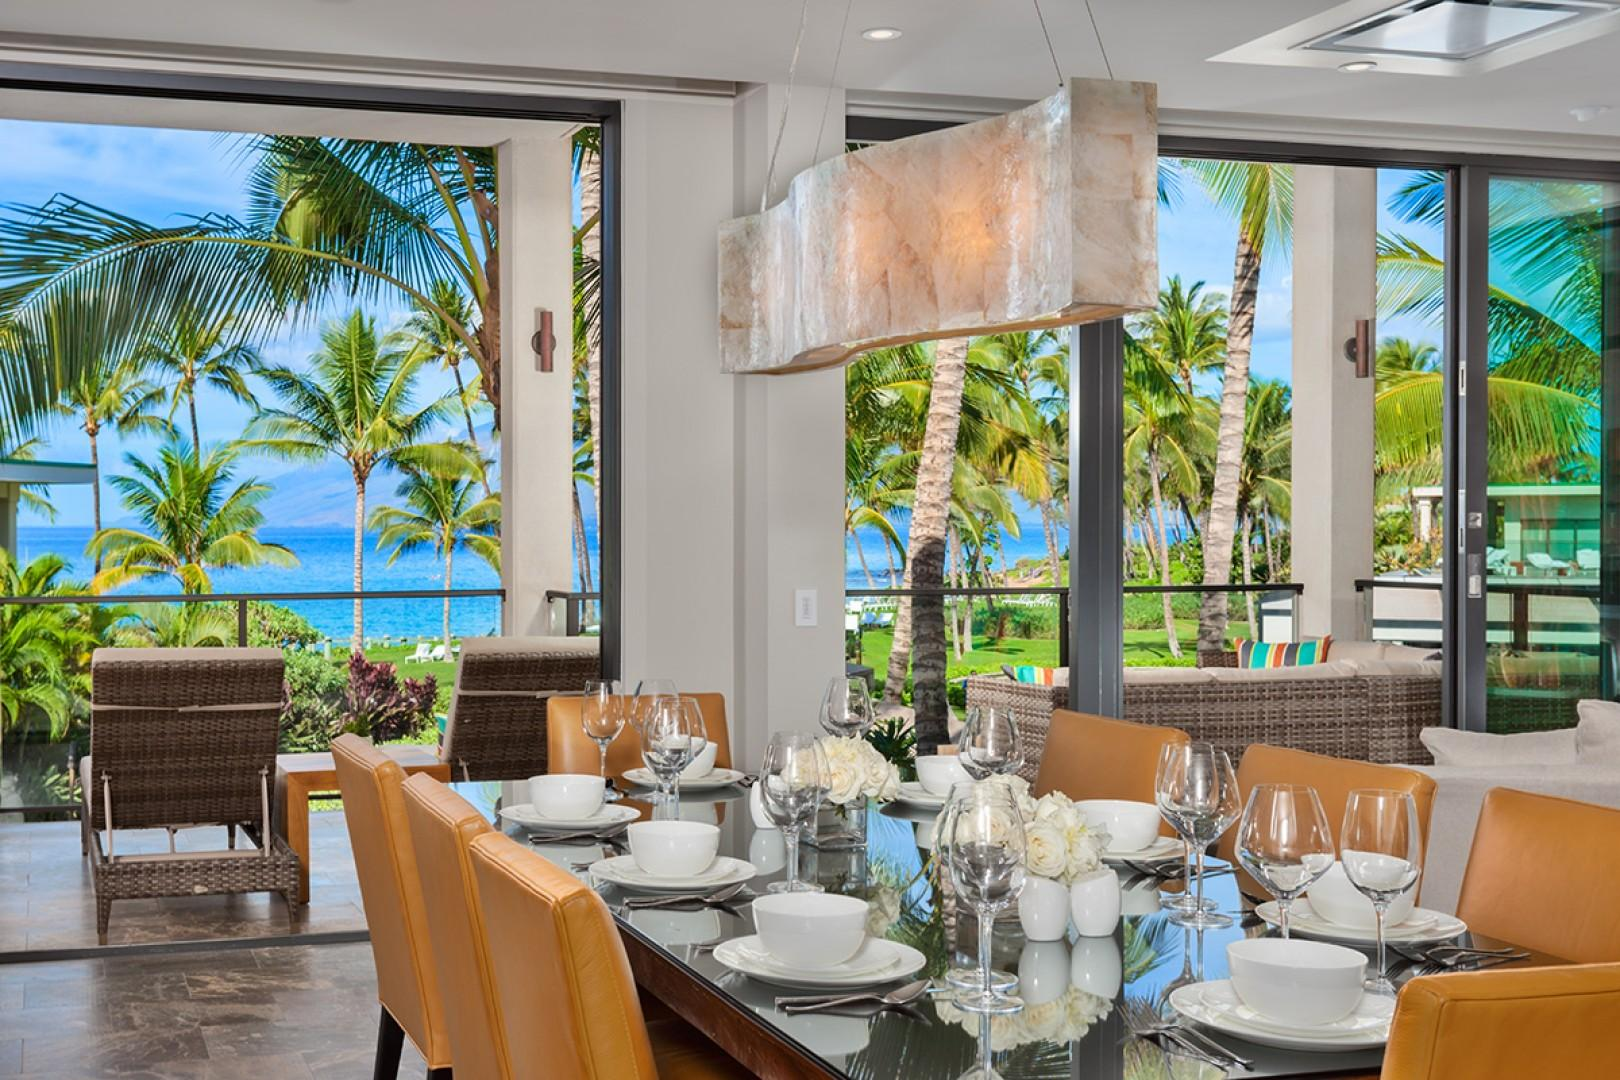 Elegant and Spacious Indoor Ocean View Dining for 8